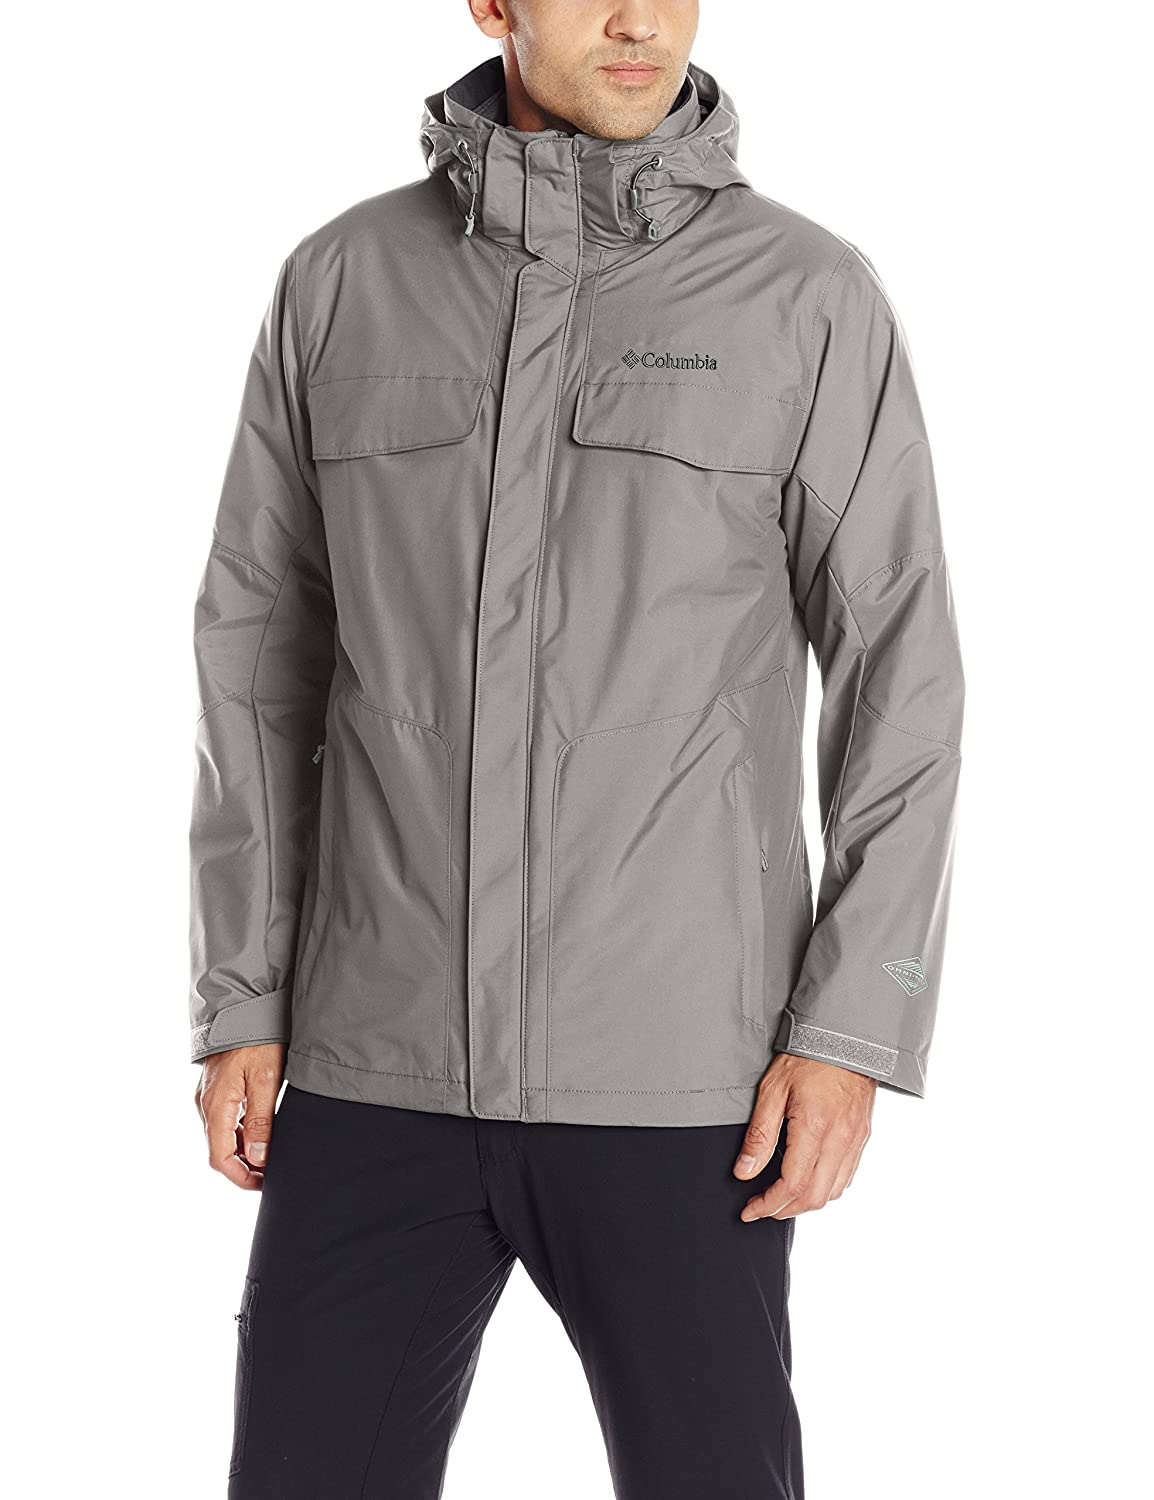 Columbia Sportswear Men's Bugaboo Interchange Jacket with Detachable Storm Hood Columbia (Sporting Goods) WT1053-866